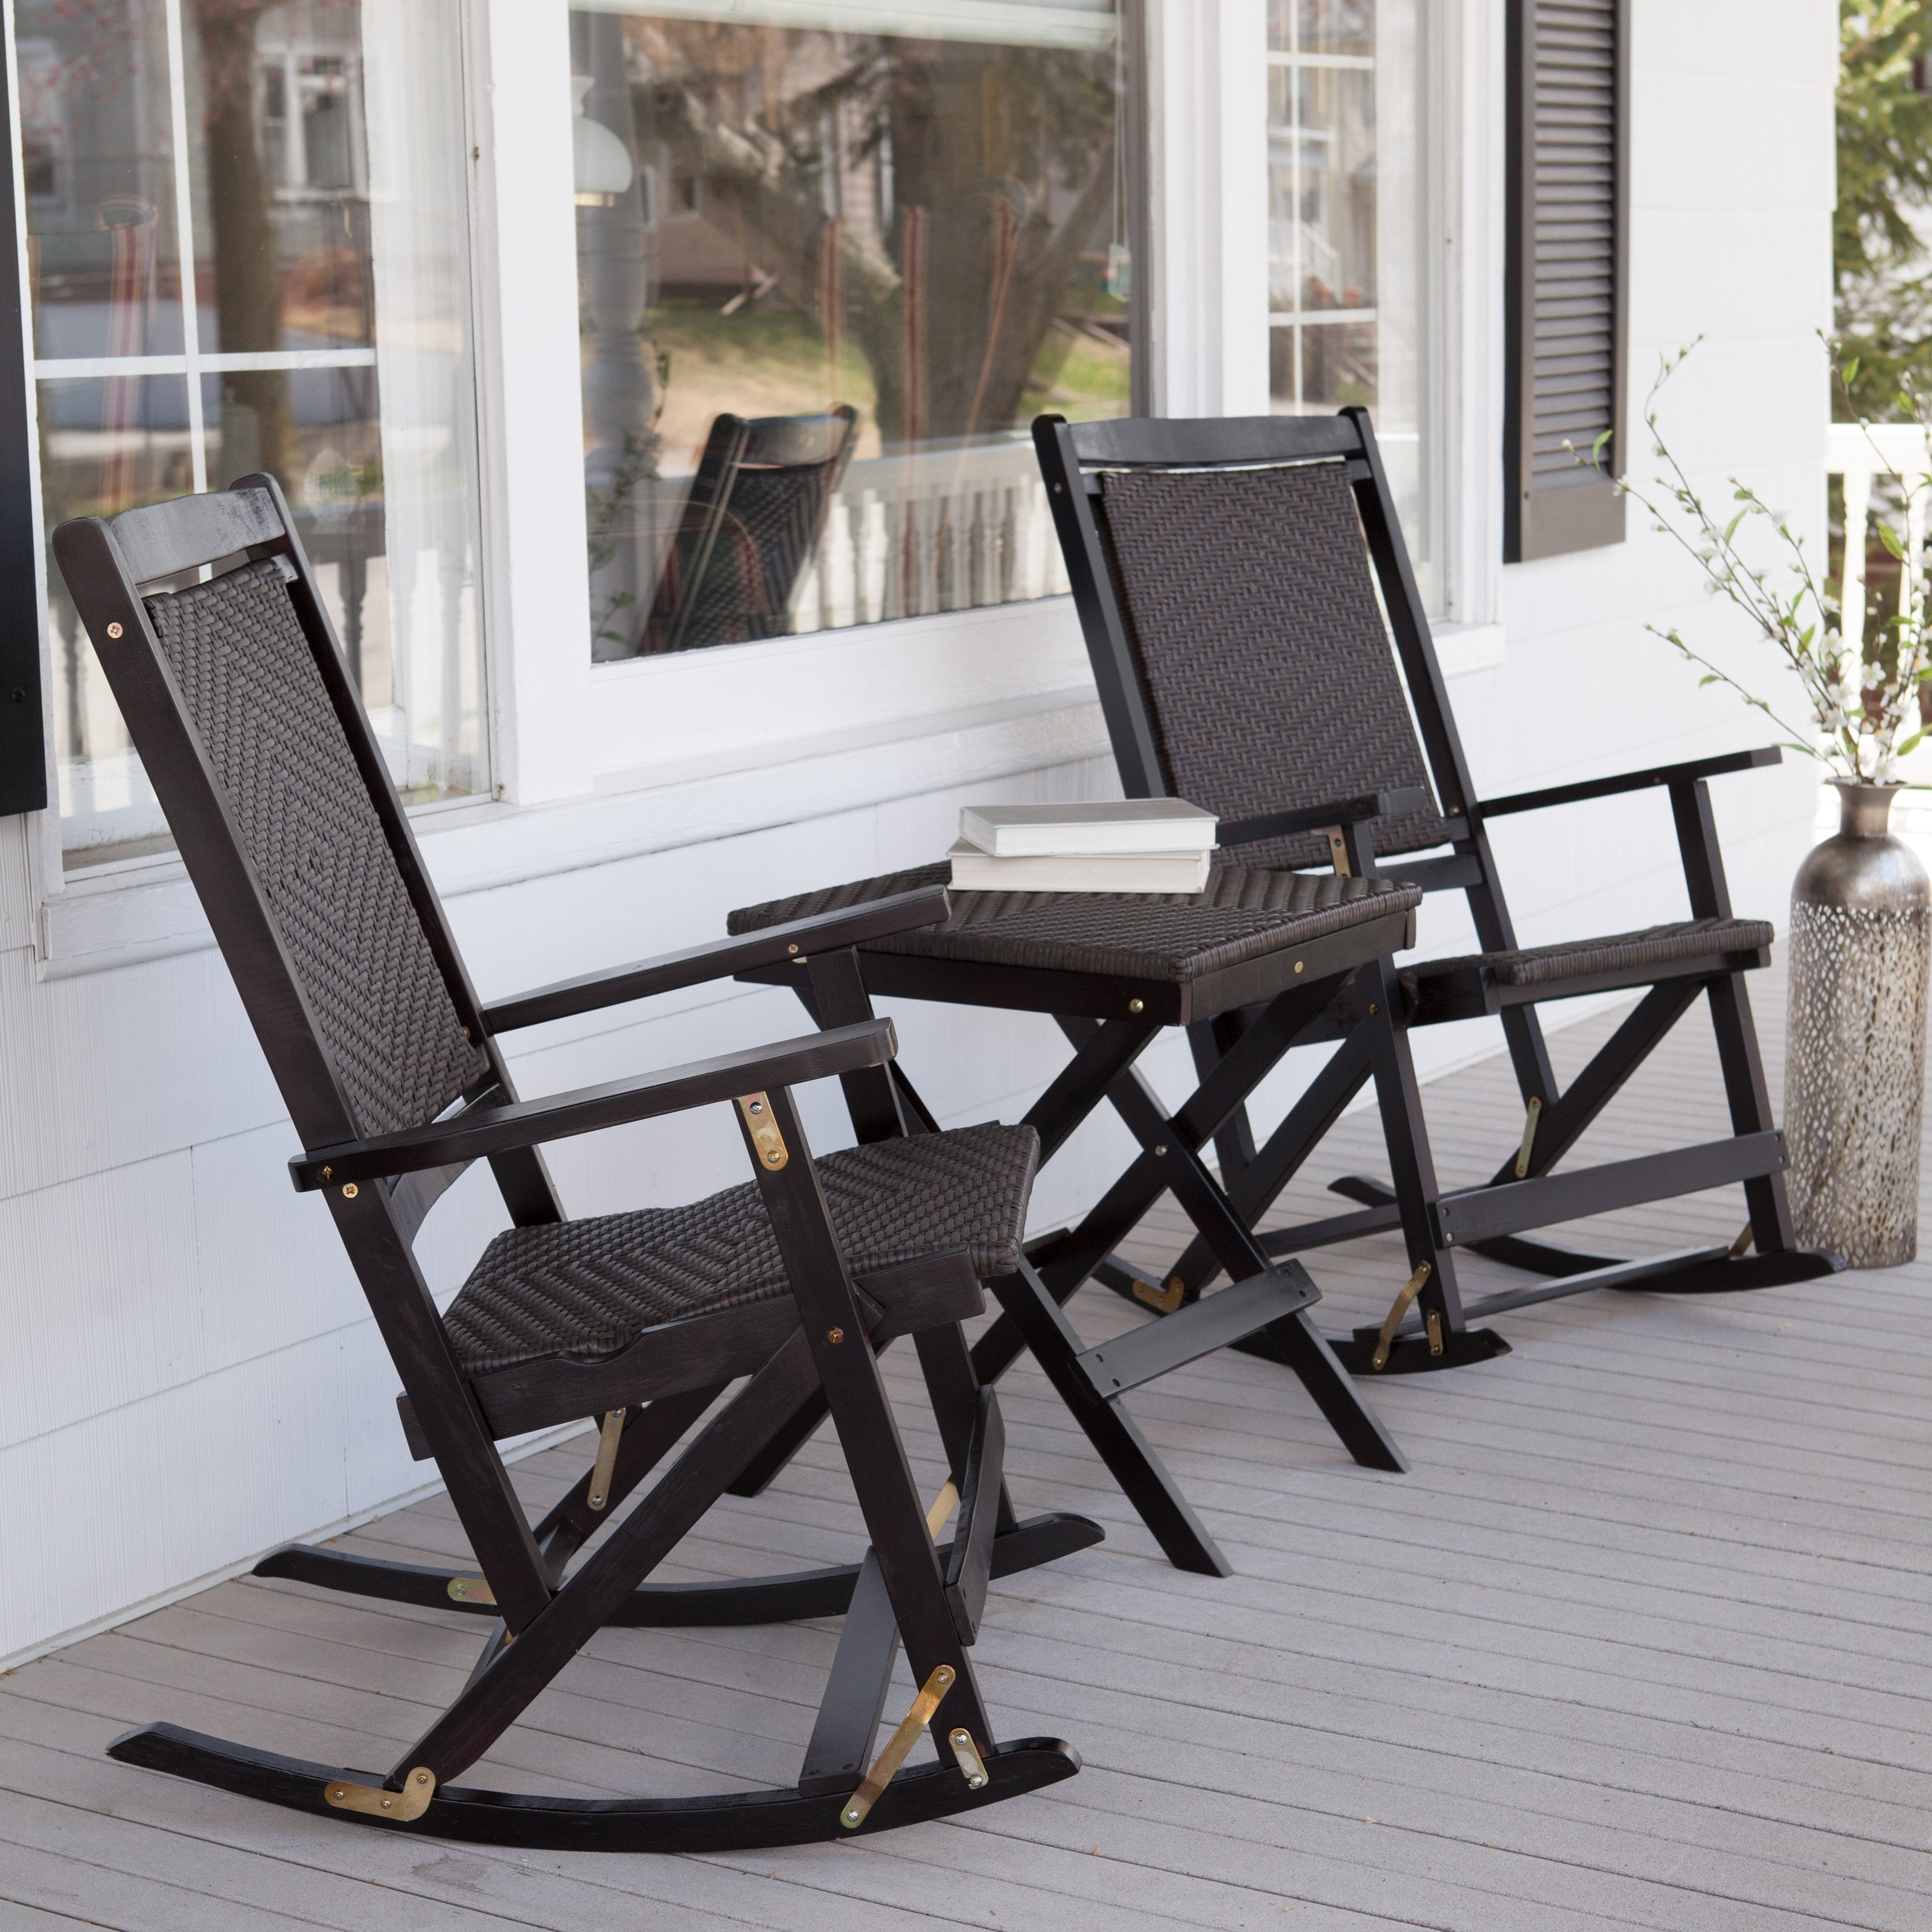 Wonderful Black Wicker Rocking Chairs Chair Sofa Bed Sleeper With Within Newest Patio Rocking Chairs With Ottoman (View 10 of 20)